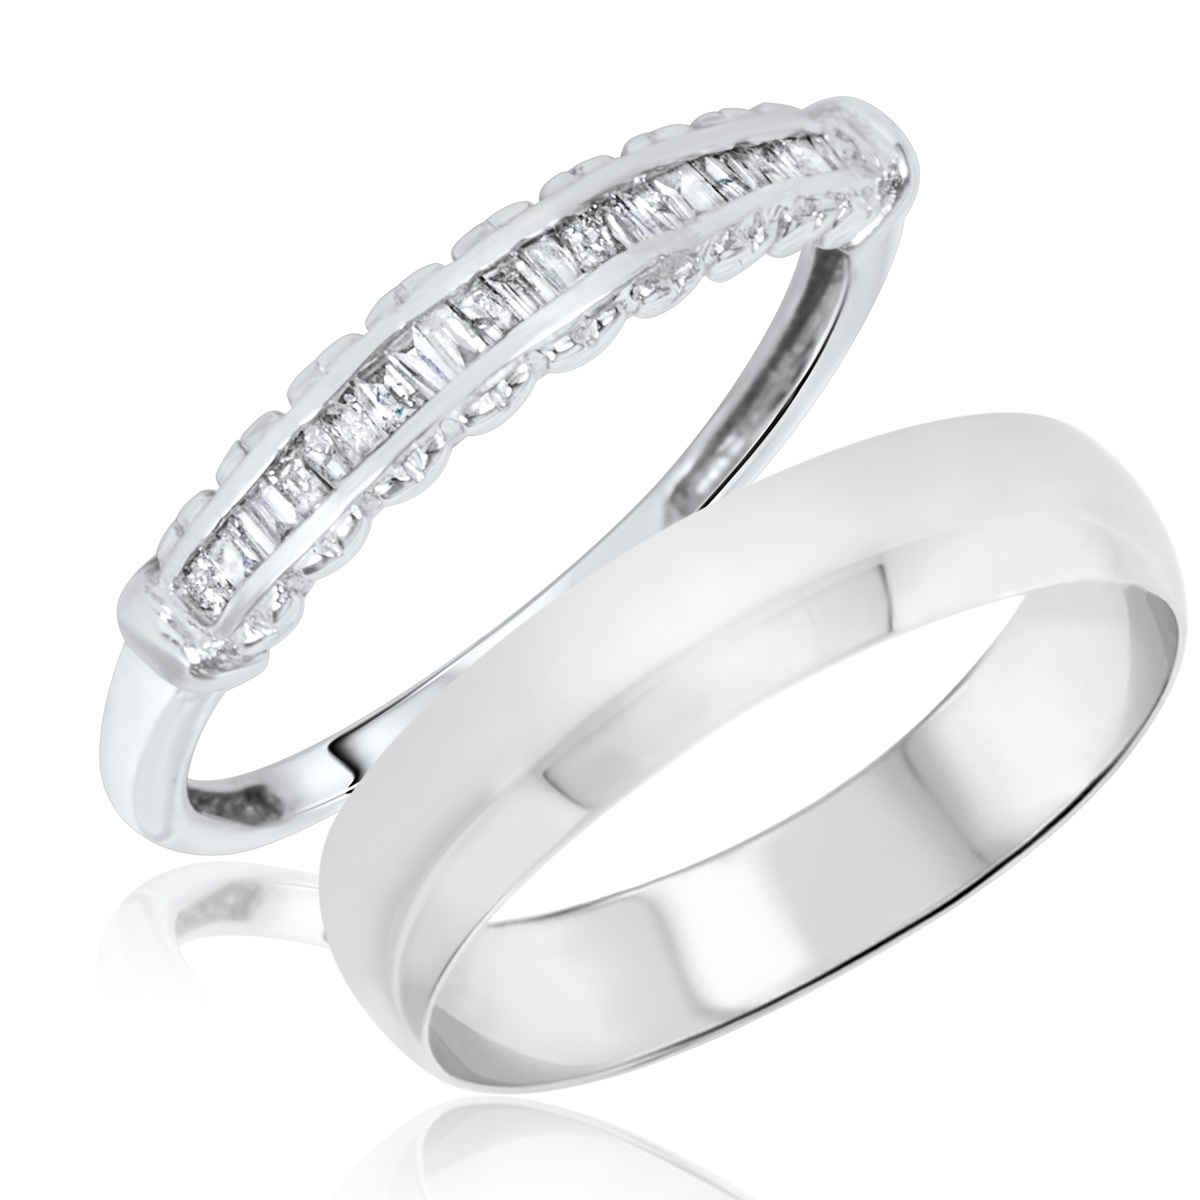 1/4 Carat T.W. Baguette Cut Diamond His and Hers Wedding Band Set 14K White Gold